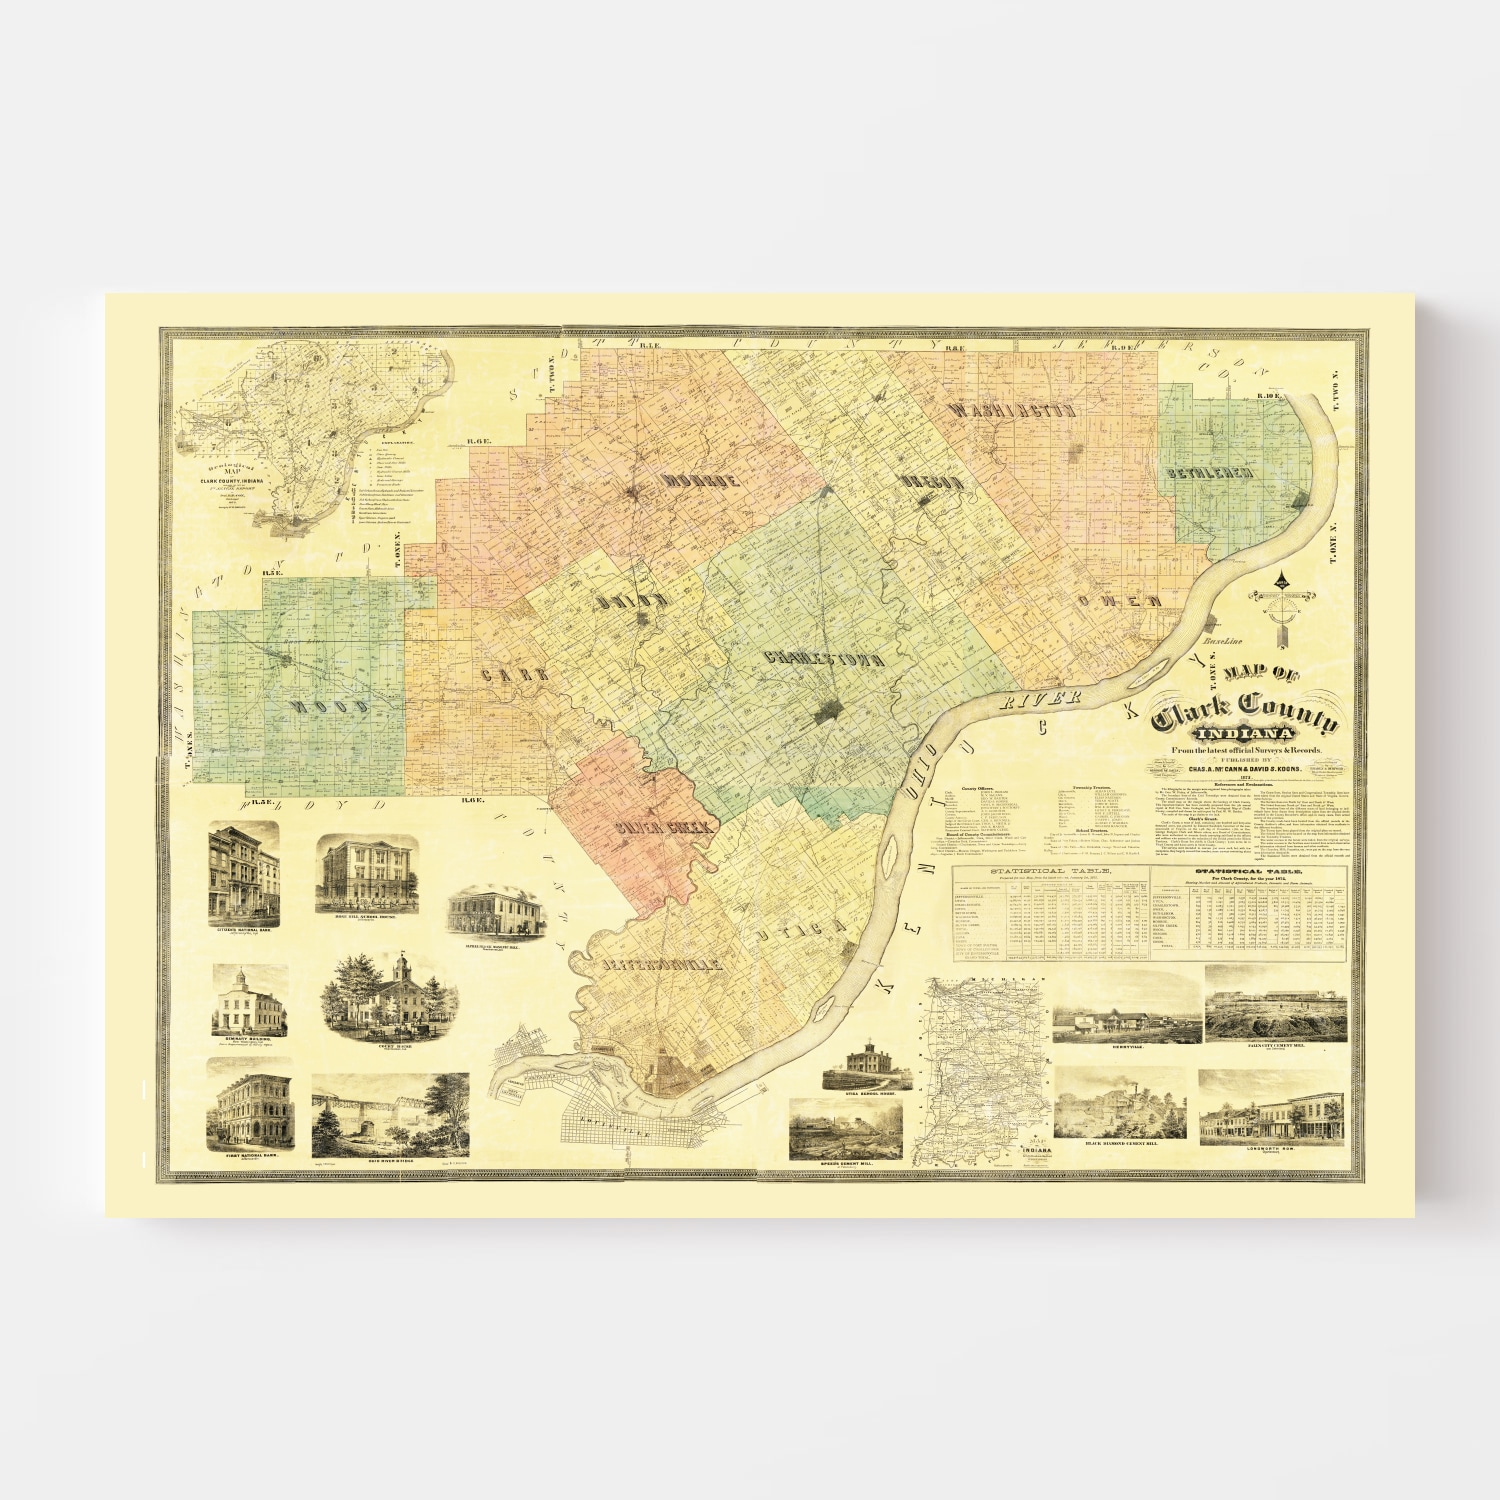 Vintage Map of Clark County, Indiana 1875